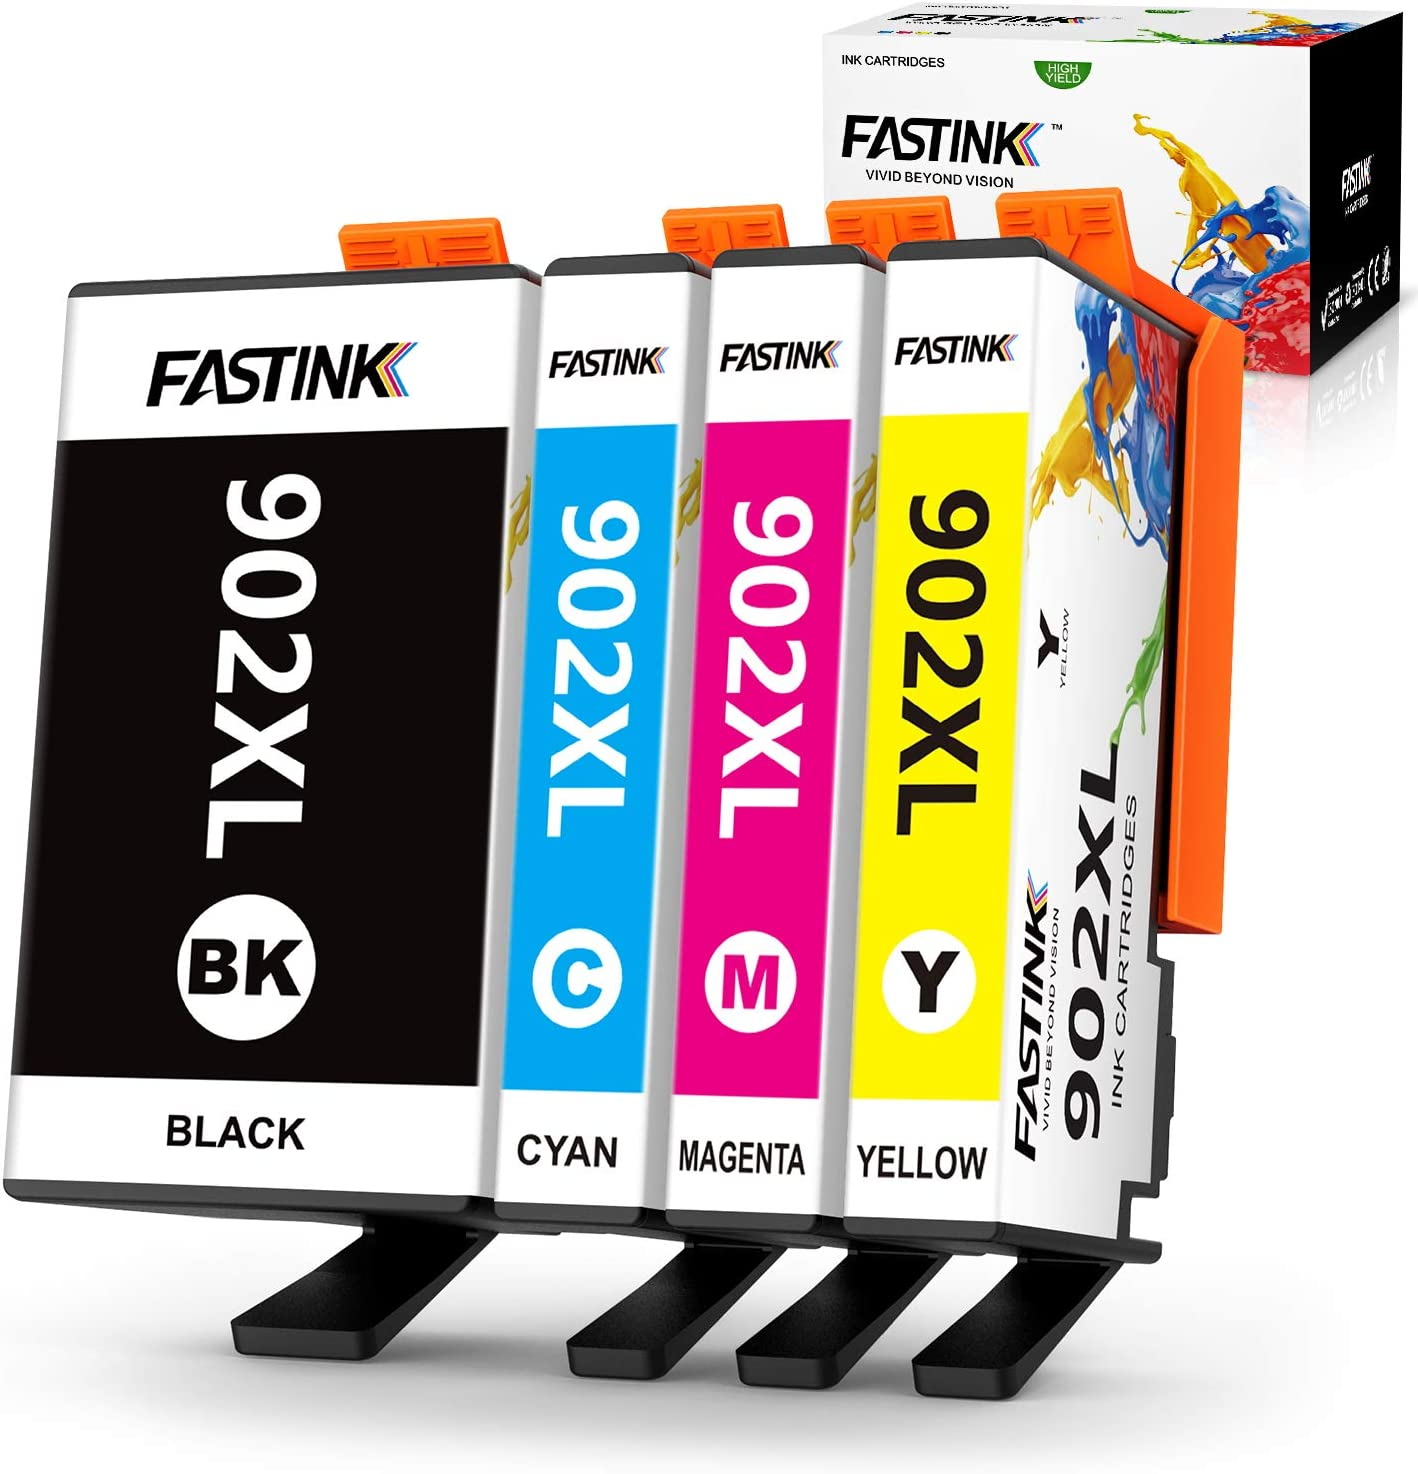 FASTINK Compatible HP Ink Cartridges Replacement for HP 902 XL 902XL with Upgraded Chips for OfficeJet Pro 6954 6960 6962 6968 6978 Printers,4 Packs, (1 Black, 1 Cyan, 1 megenta, 1 Yellow)